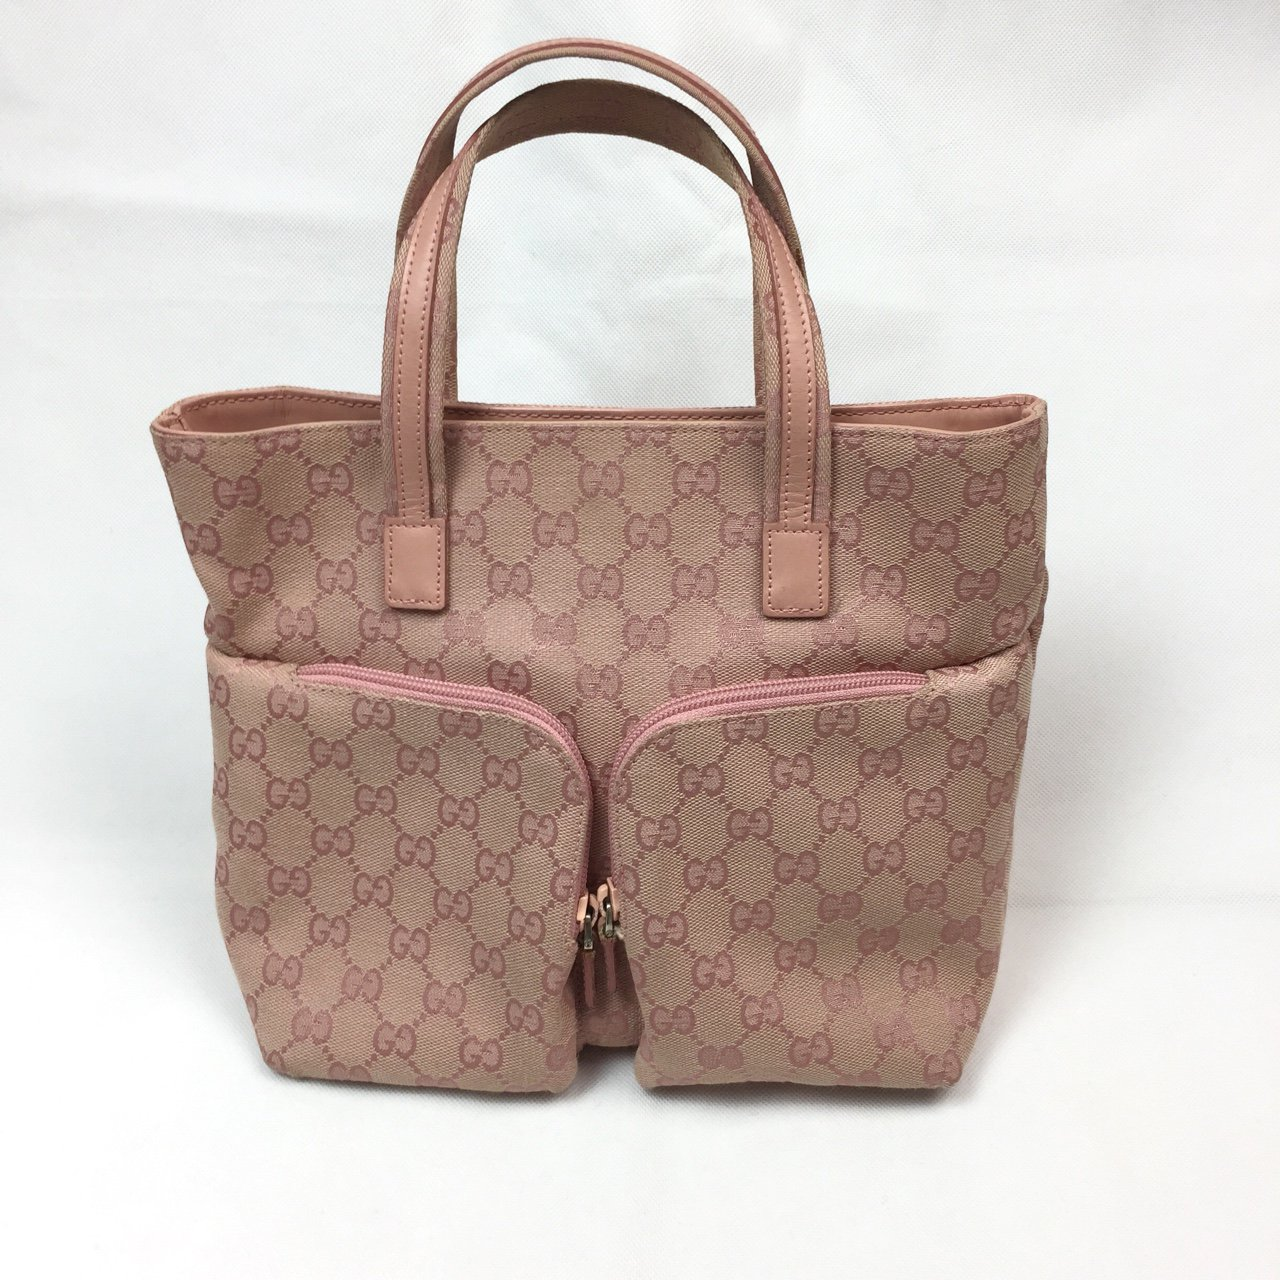 5f80961b6 @oliversarchive. 2 years ago. United Kingdom. Gucci Baby Pink Tote ...